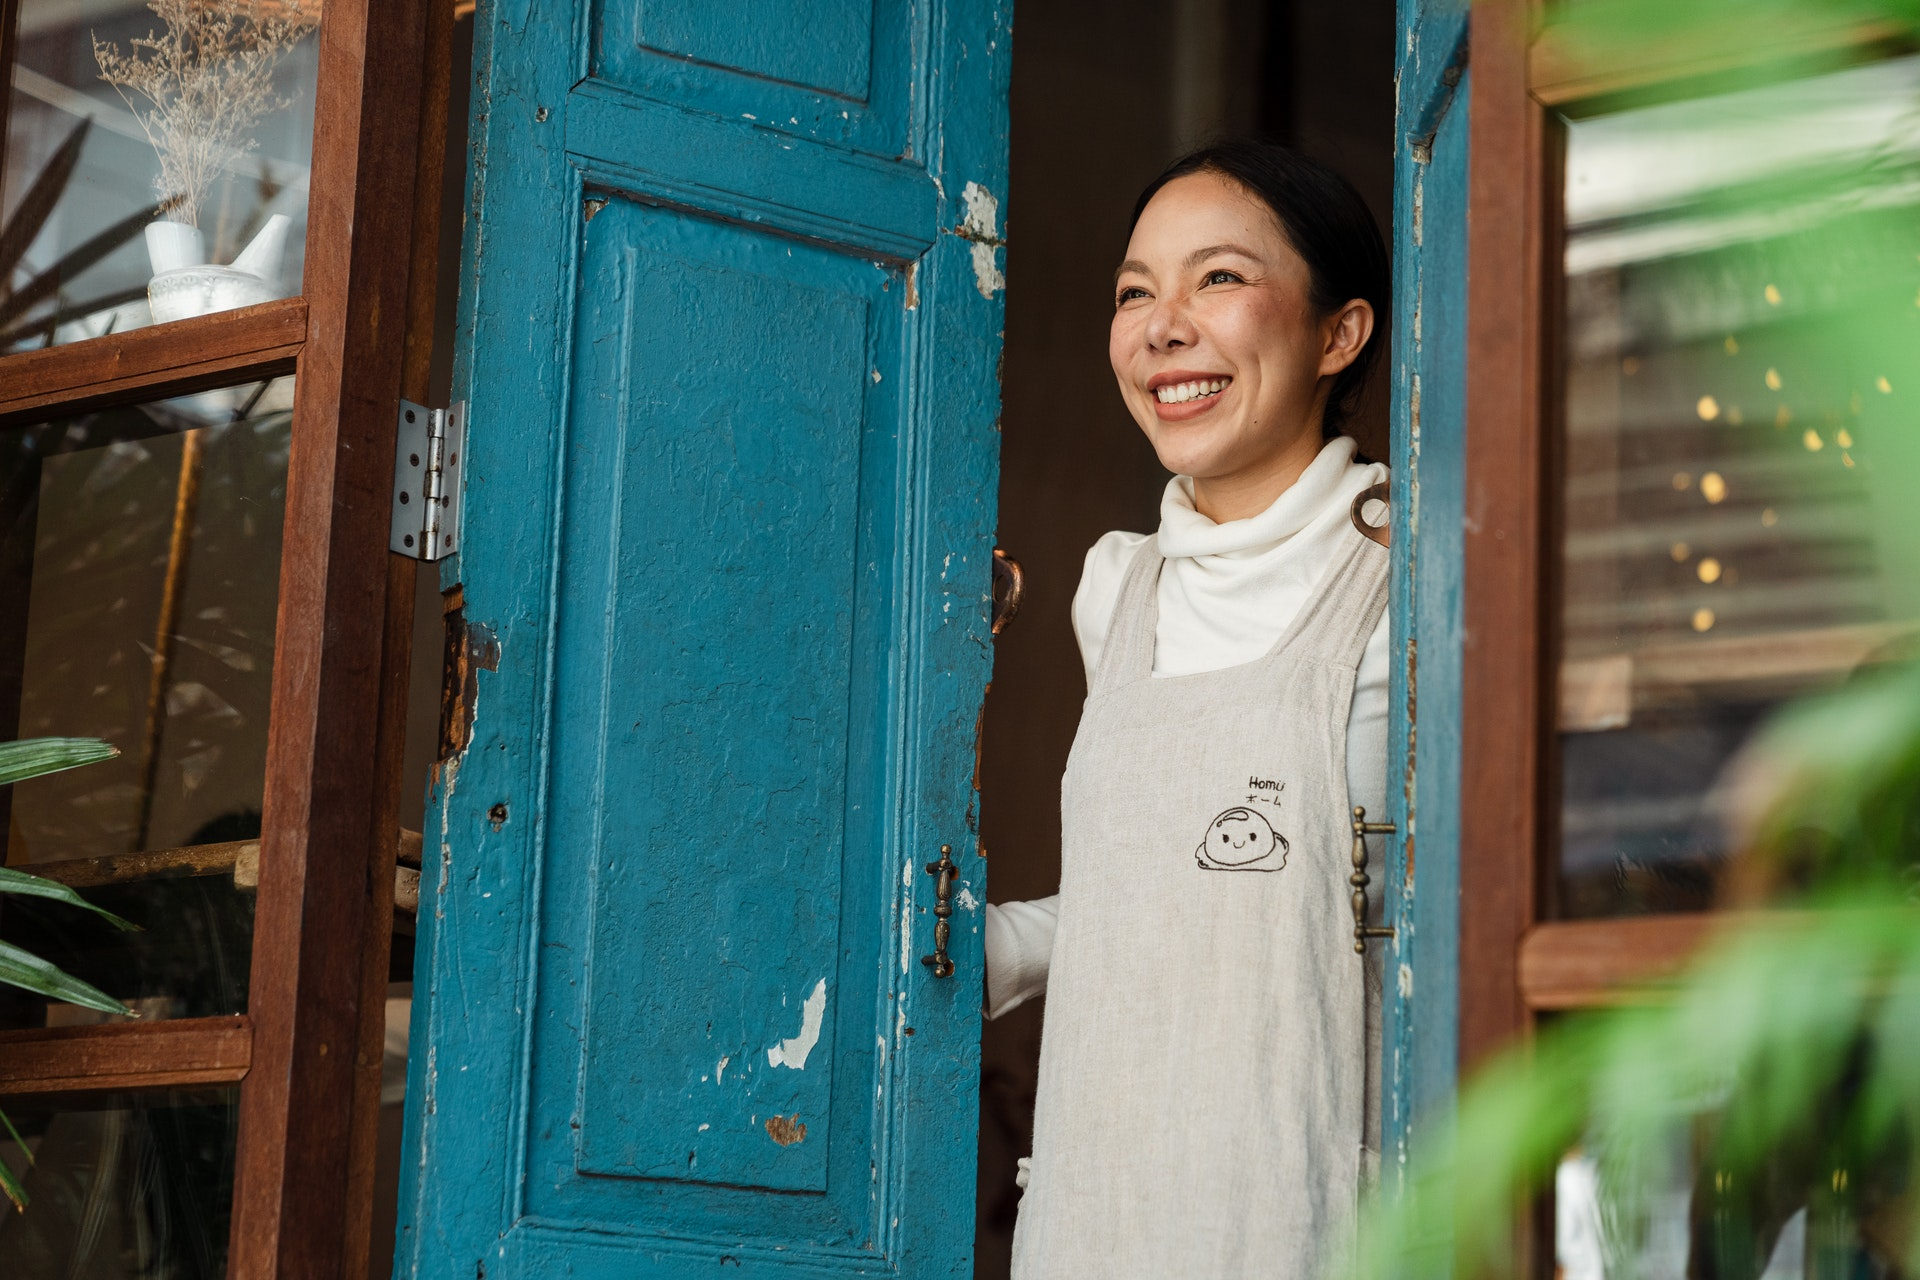 Small business owner standing in her doorway